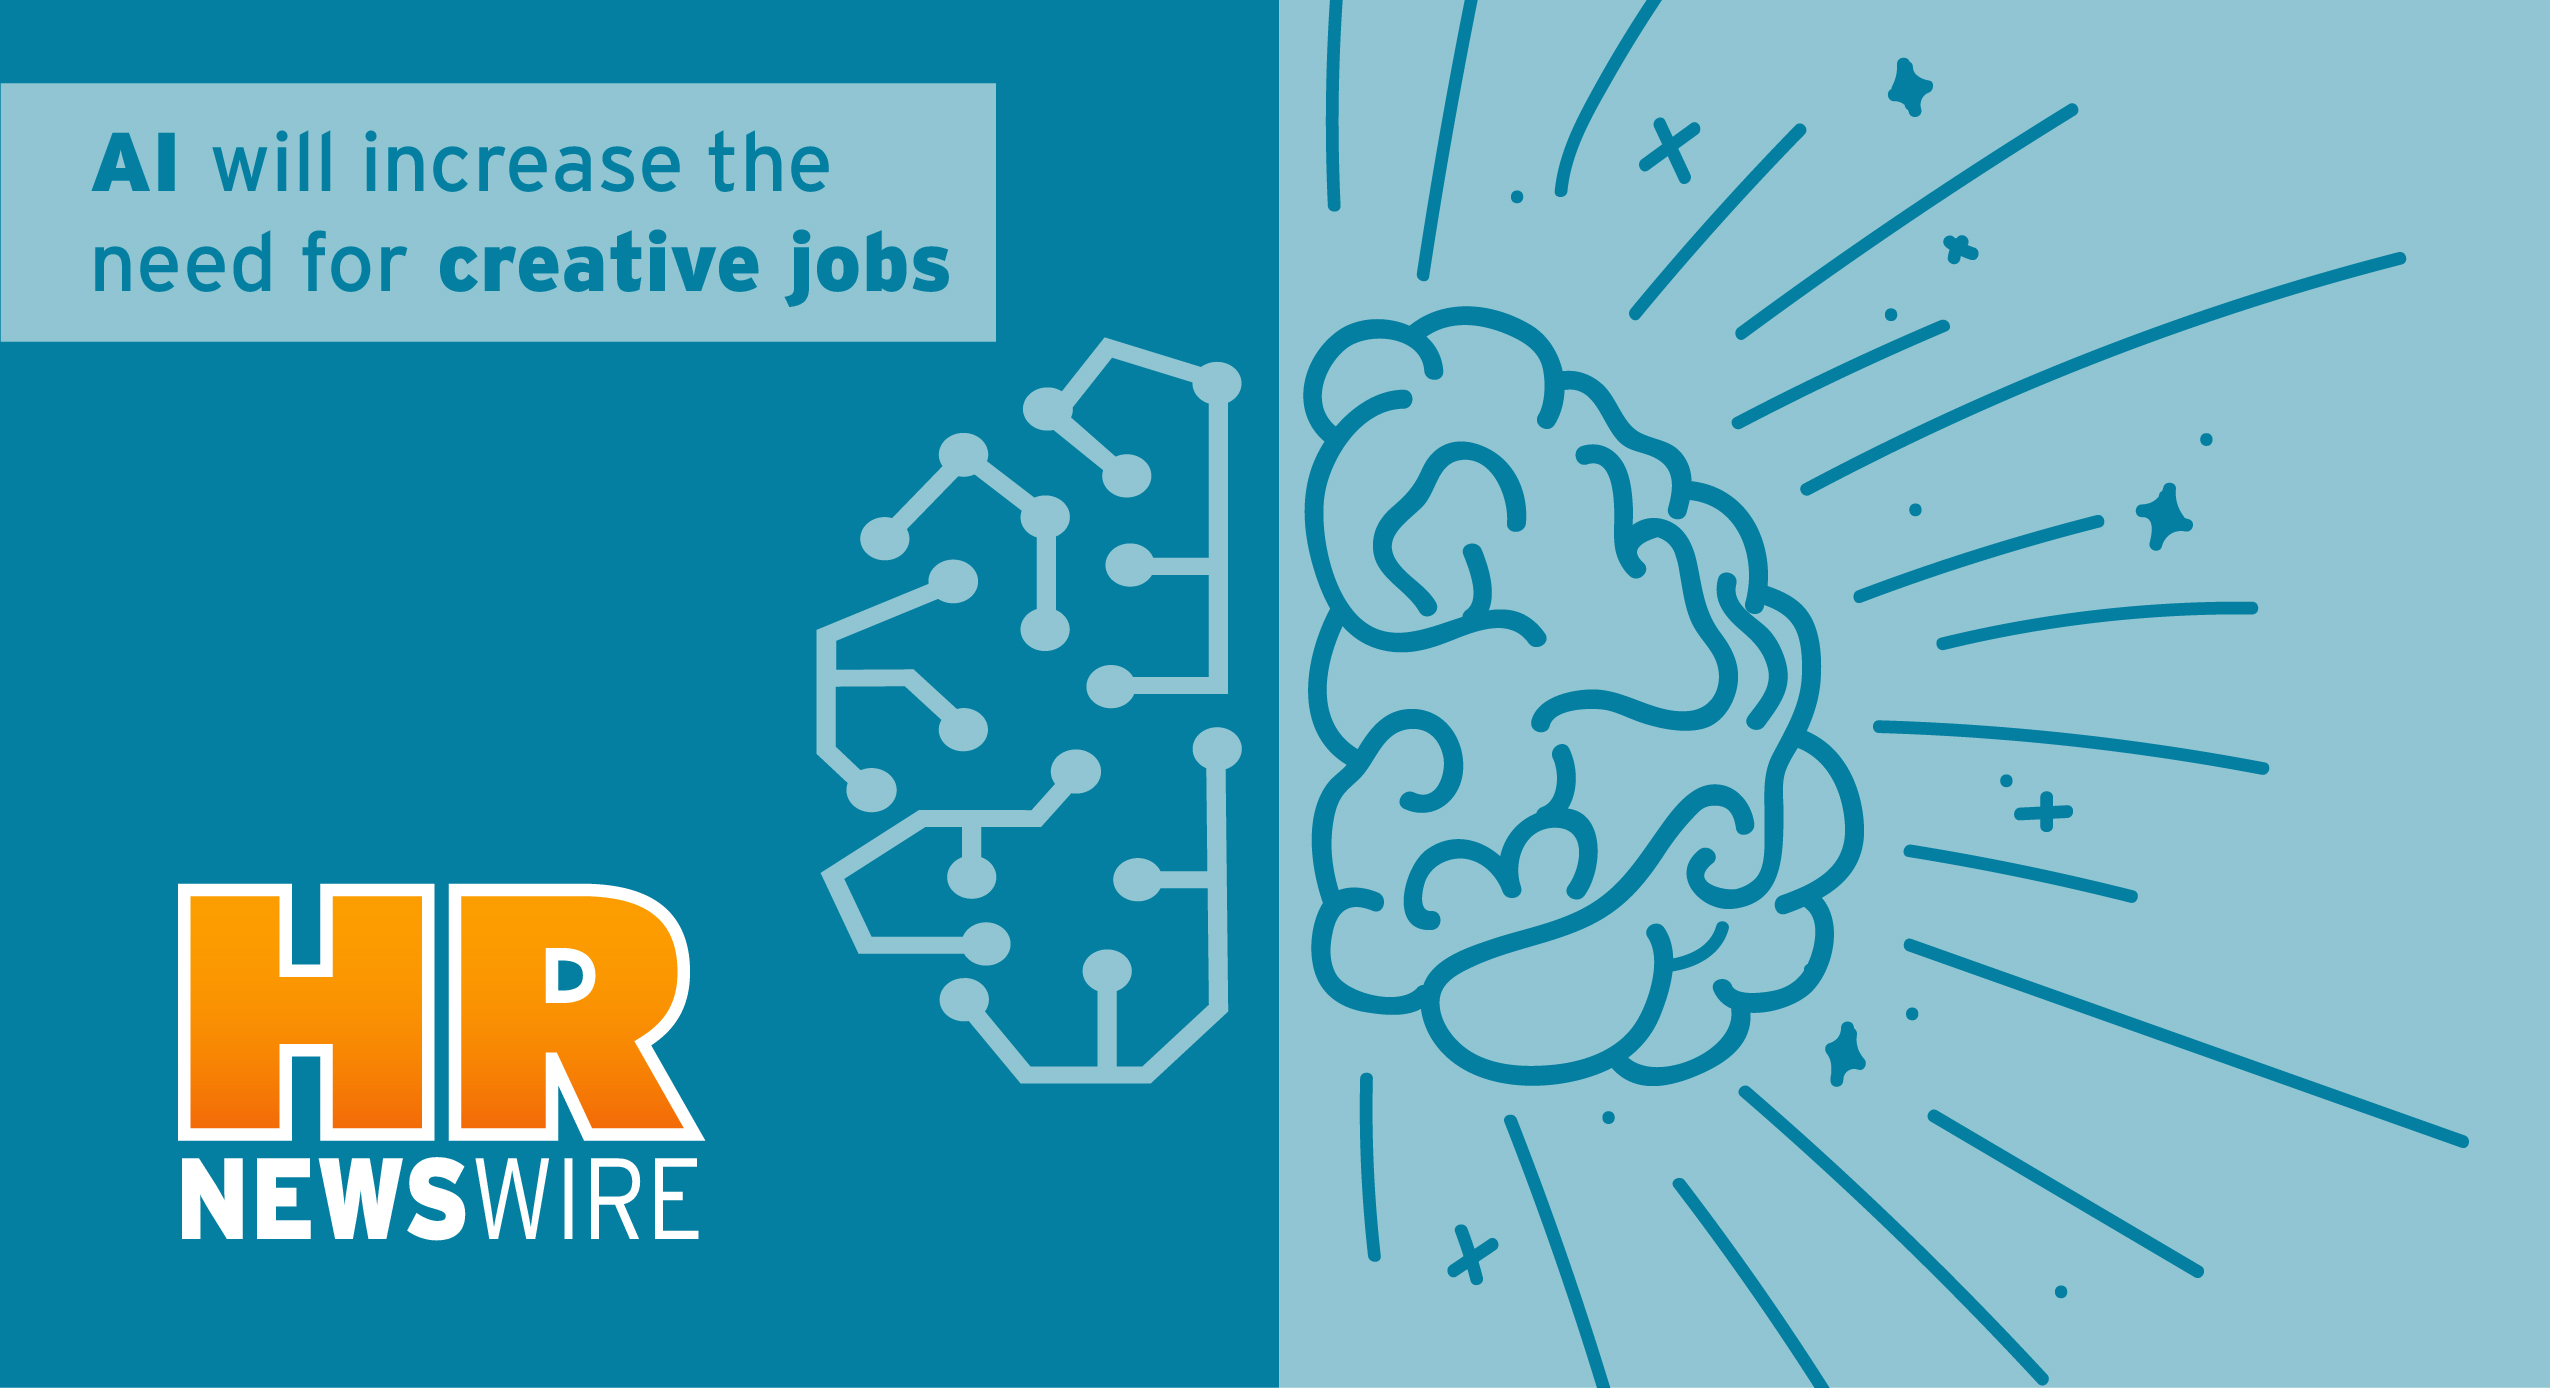 The HR News Wire: As AI Takes Over, the Demand For Creative Jobs Increases